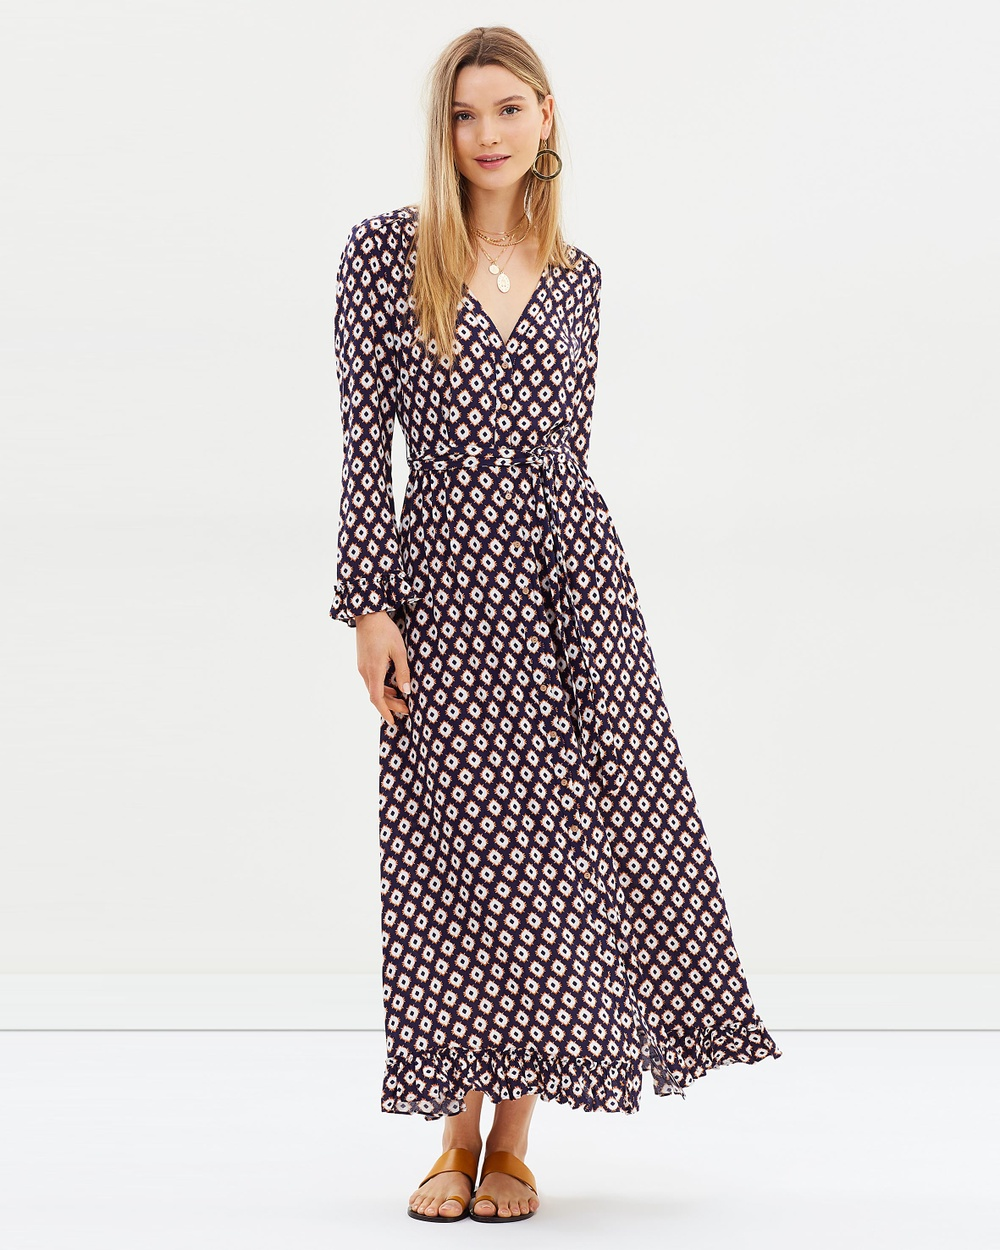 Tigerlily Parisa Maxi Dress Printed Dresses Indigo Parisa Maxi Dress